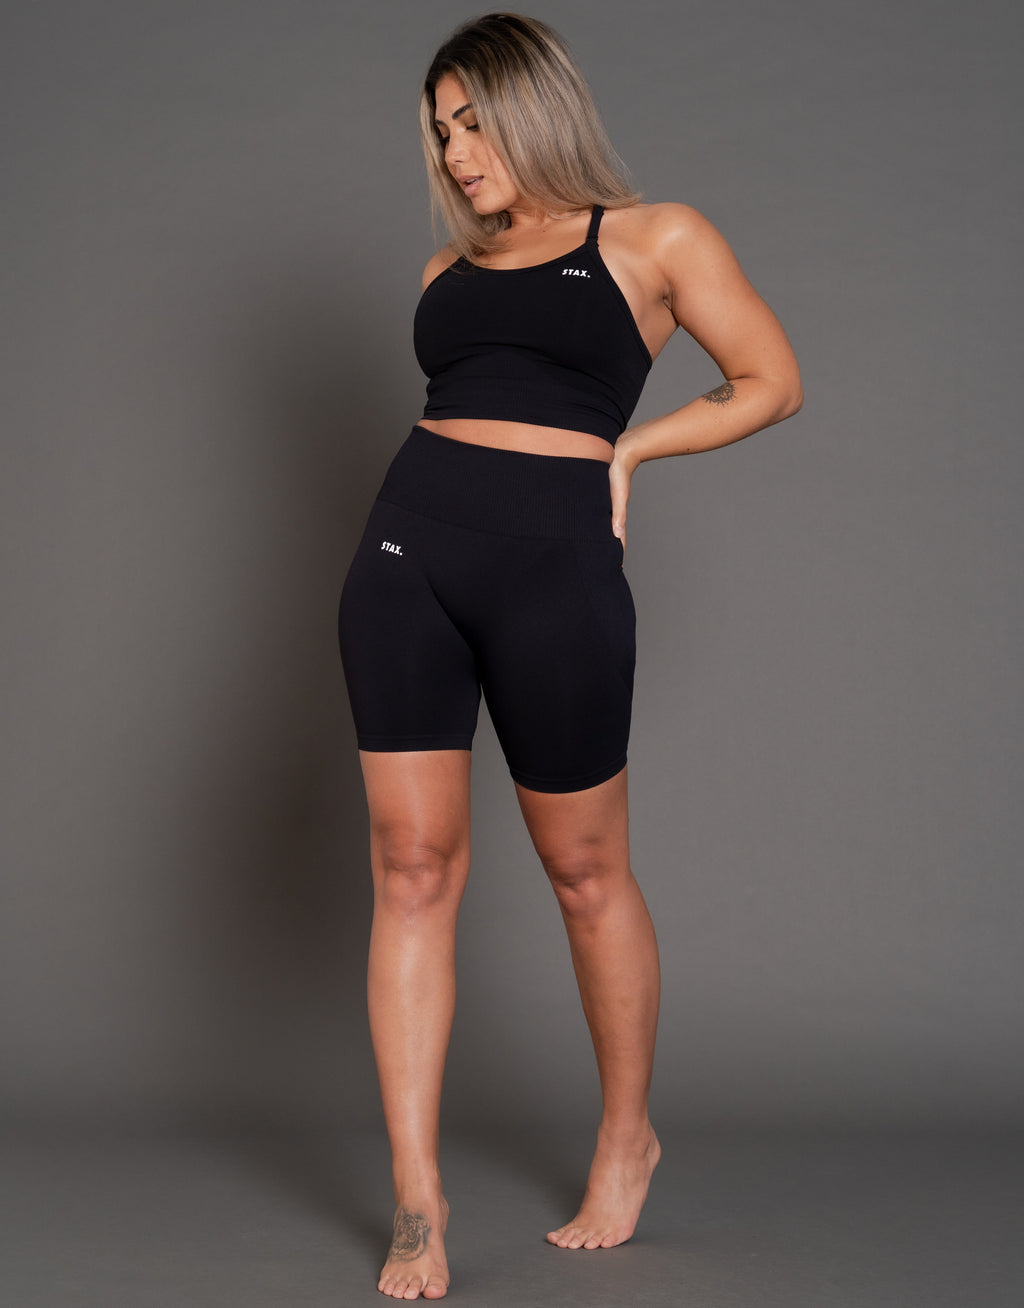 STAX. Premium Seamless V3 Midi Bike Shorts - Black Obsidian (Black)